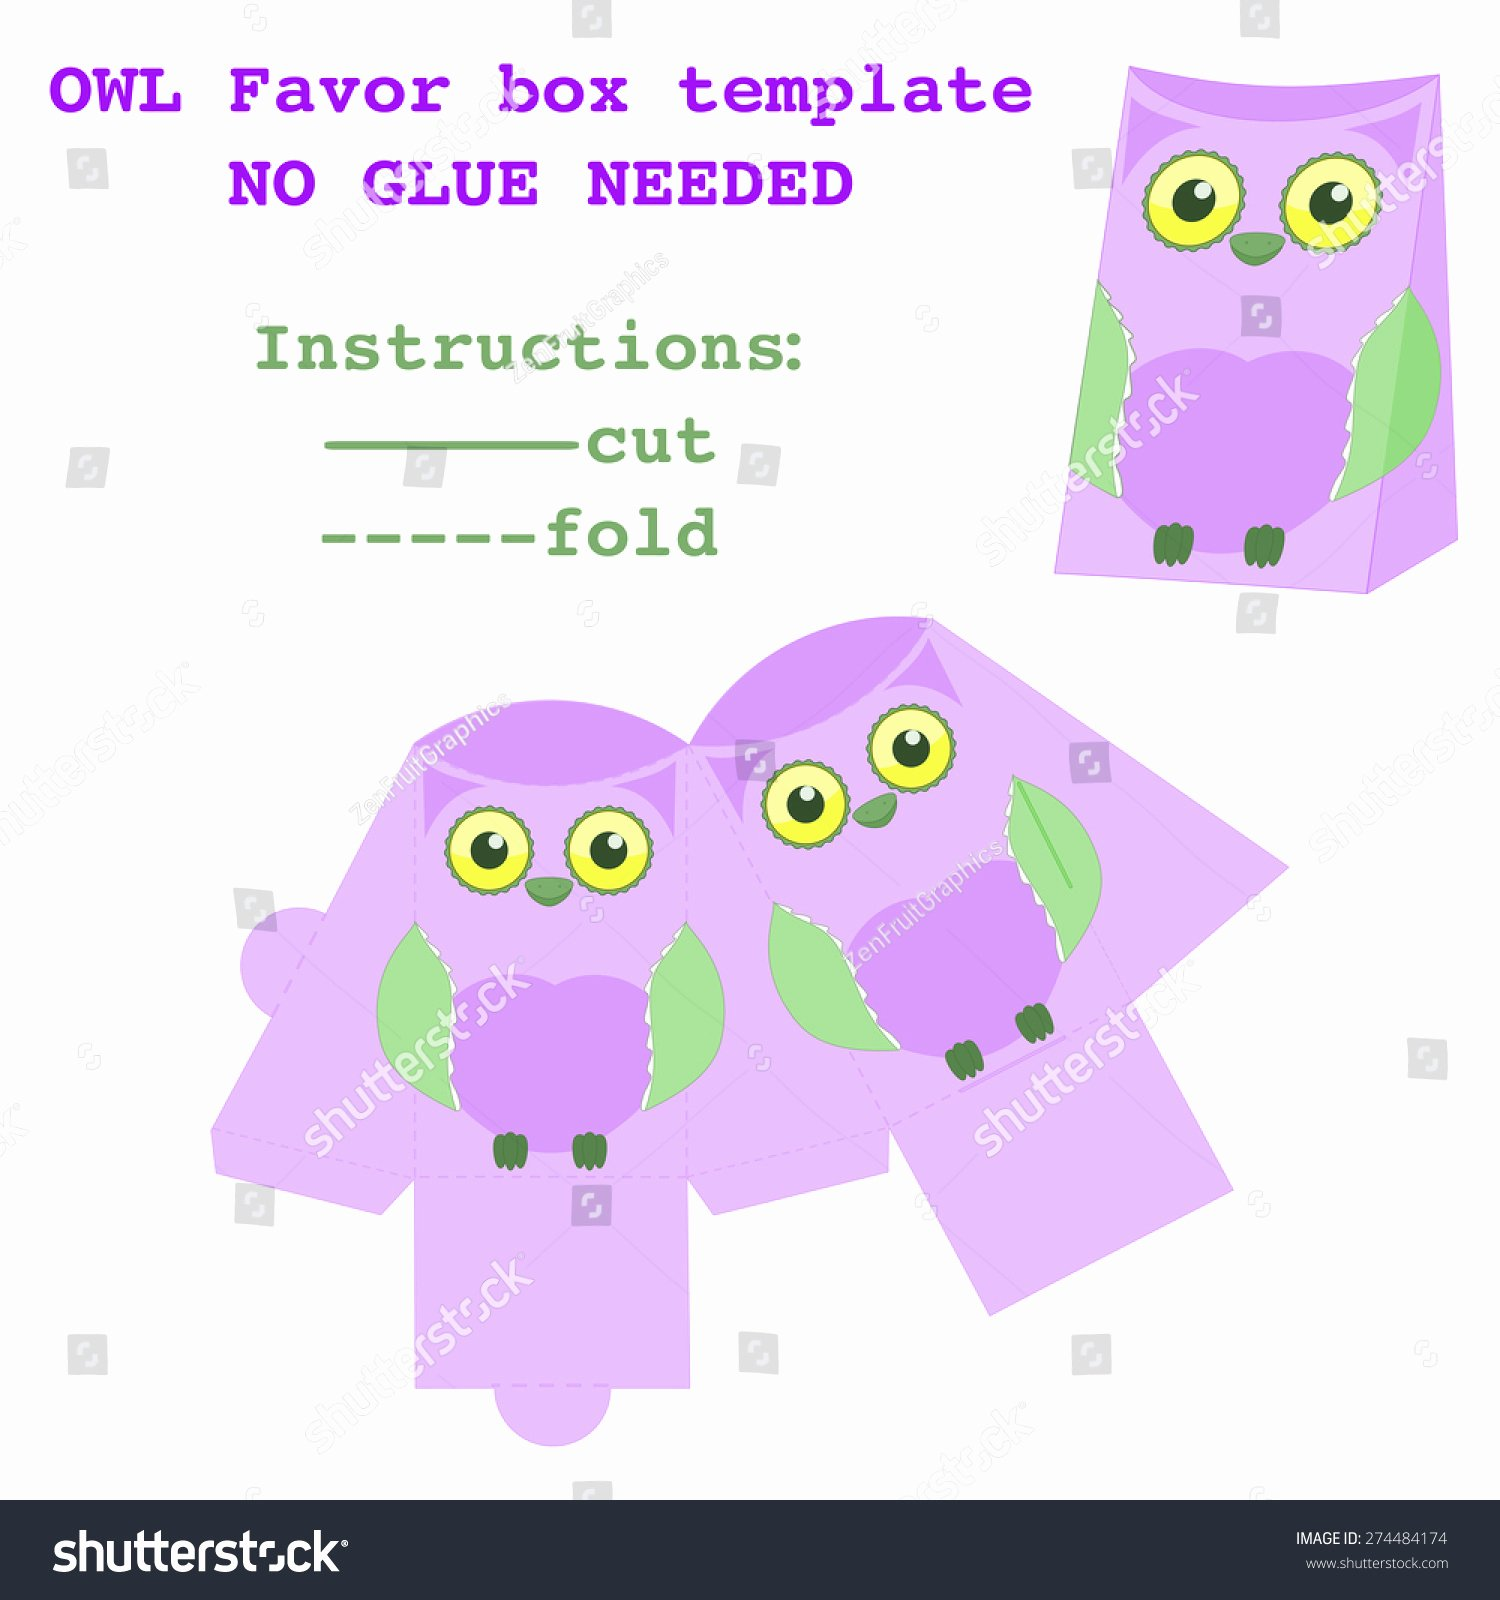 Party Favor Box Template Unique Packaging Box Design Favor Box Template Owl Pattern Design